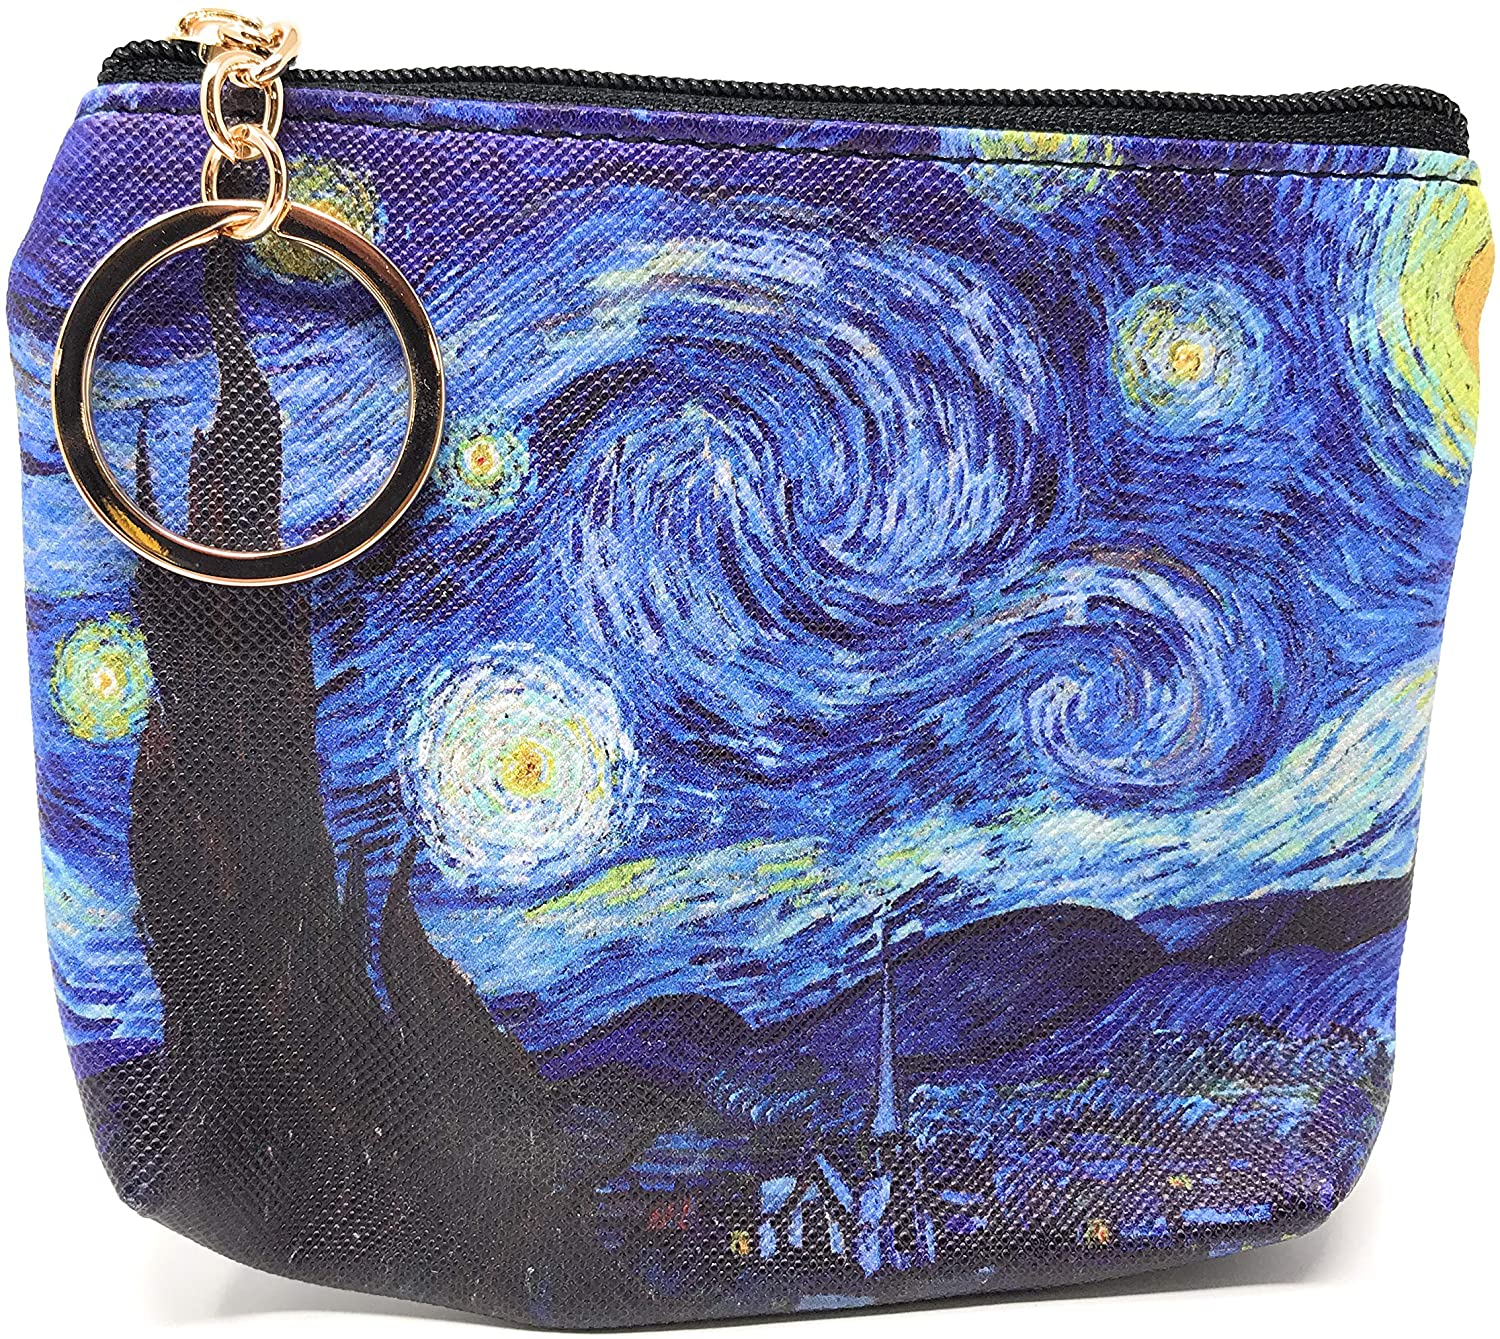 Value Arts Van Gogh Starry Night Coin Purse Pouch with Key Ring